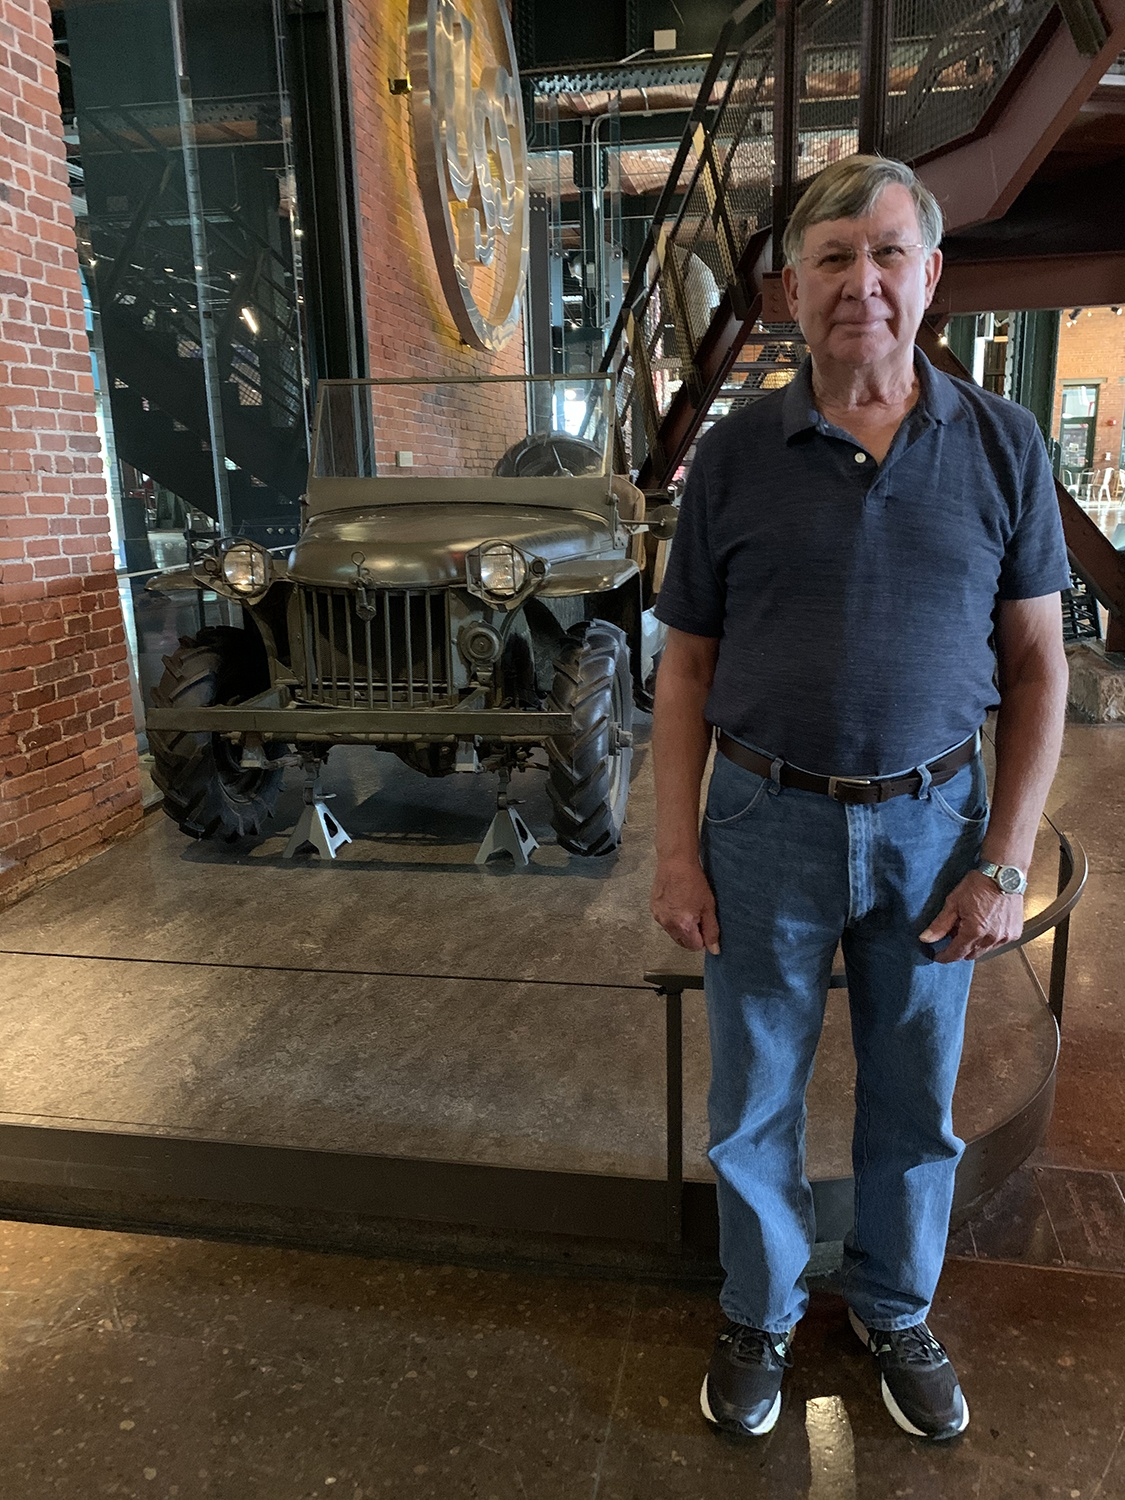 Ralph's son, Dave Turner, with the world's oldest surviving jeep (on long-term loan from the Smithsonian) in the History Center's first floor Great Hall.